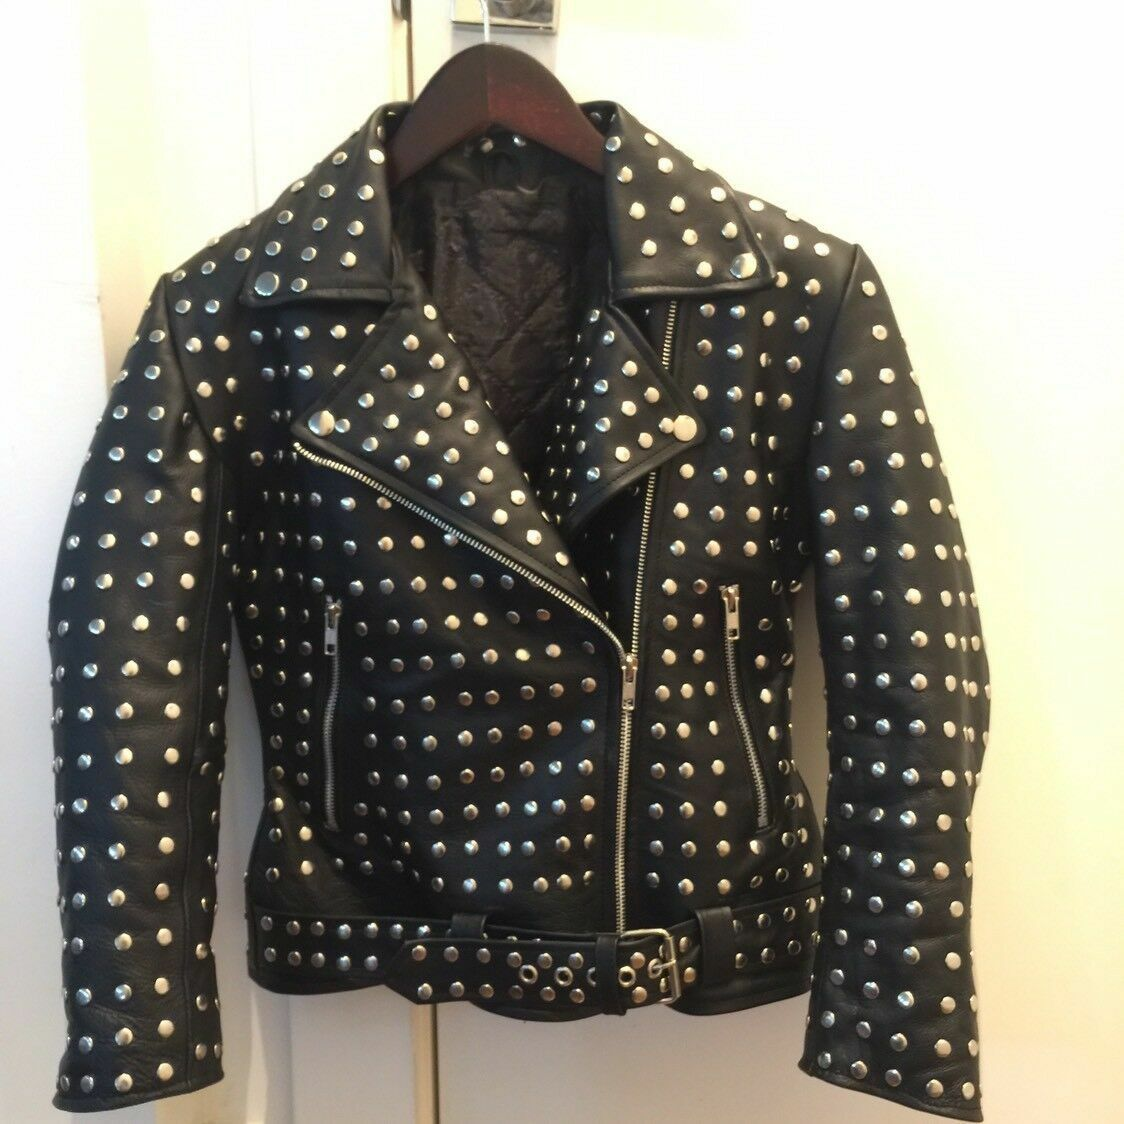 WOMENS FASHION COW HIDE JACKET SILVER STUDDED PUNK STYLE LEATHER BIKER JACKET